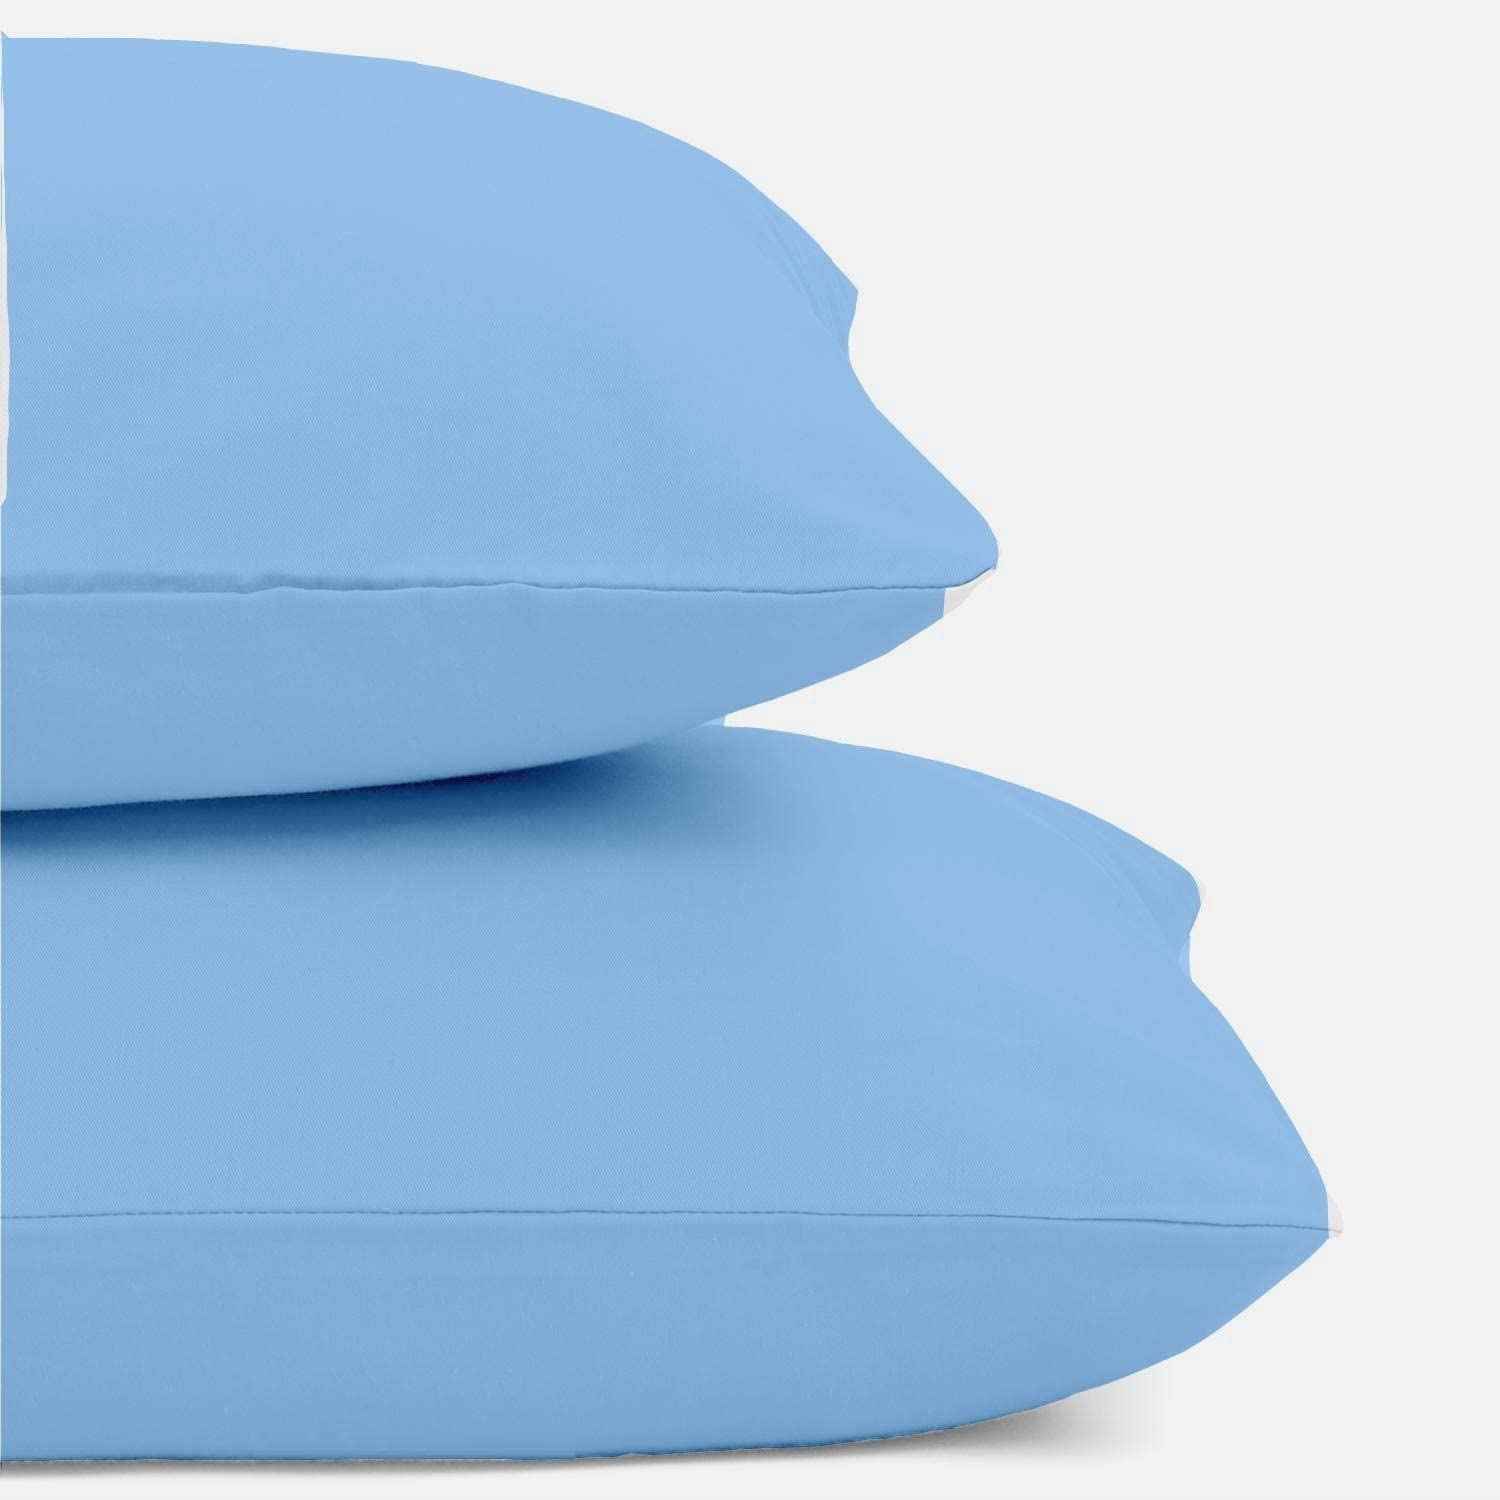 """Toddler Travel Pillowcases Set of 2 Frost Blue 14x20 Inches Envelope Style Giza Cotton Super Soft Travel Kids Pillow Shams 14/"""" x 20/"""" Fits Pillows Sized 12/"""" x 16/"""" 13/"""" x 18/"""" 14/"""" x 19/"""""""